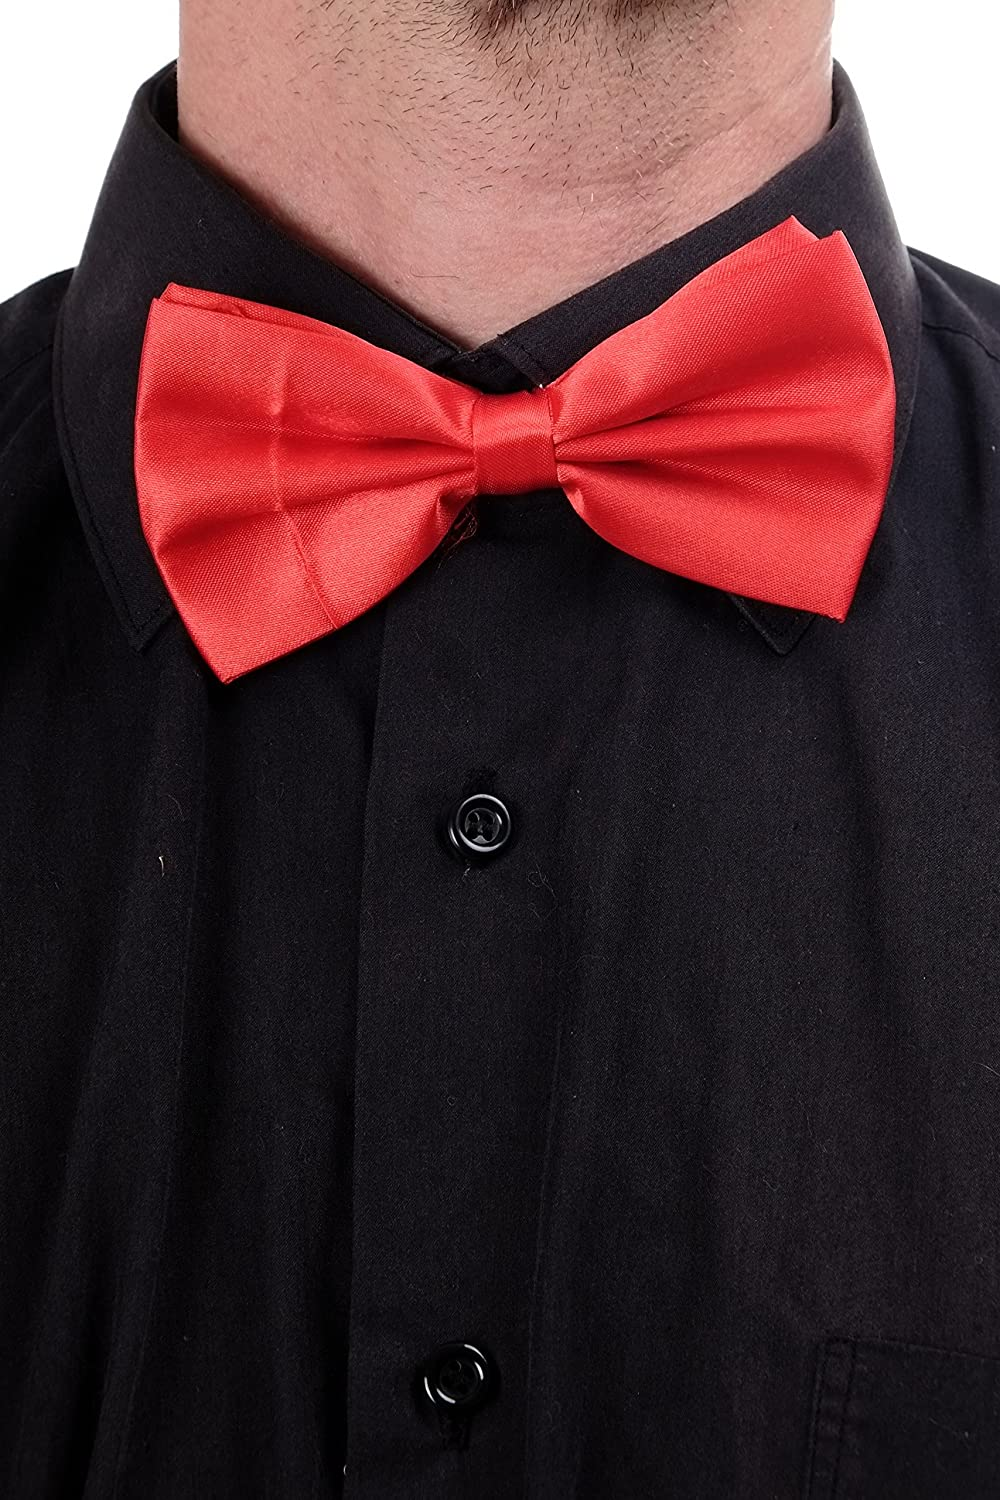 dressmeup Dress ME UP - Corbata Mariposa Bowtie corbatín Rojo ...